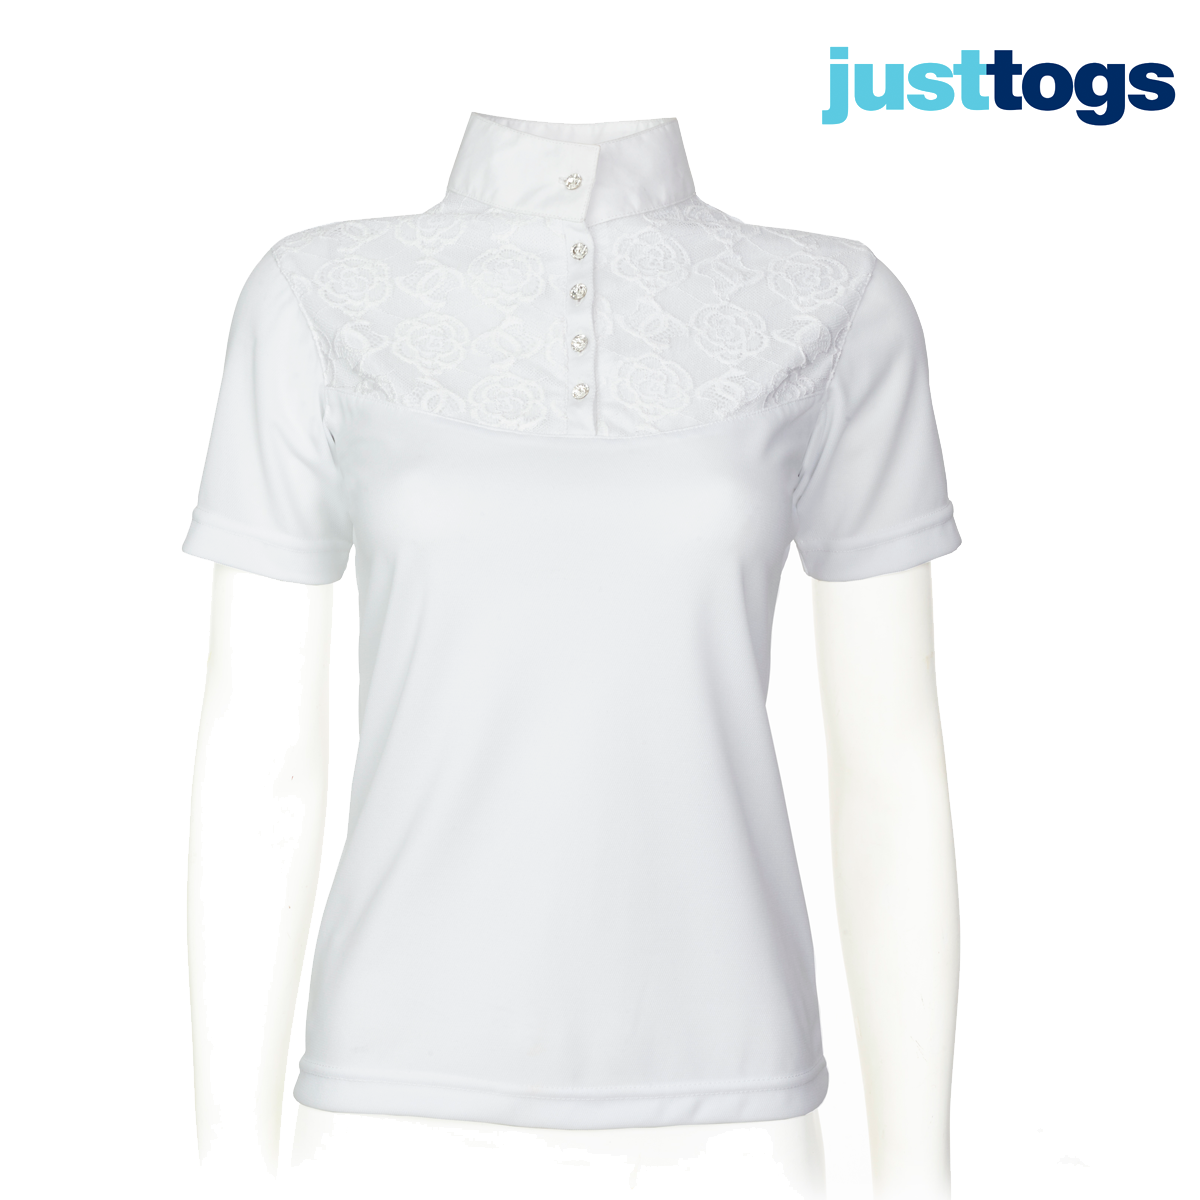 Just FREE Togs Classique Show Shirt FREE Just UK Shipping fe9644